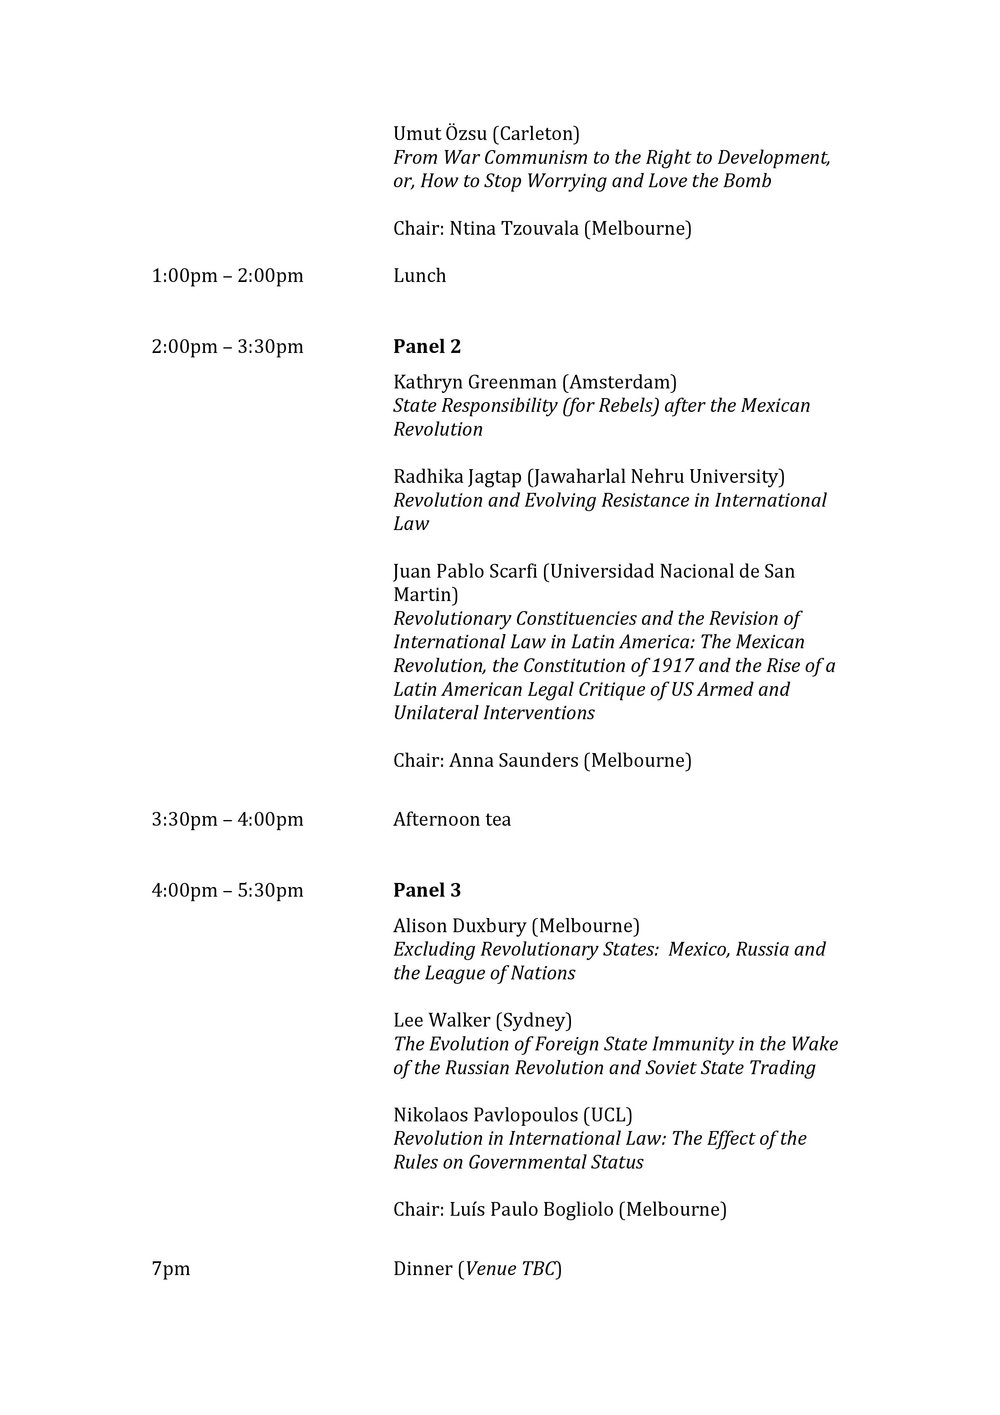 170809 Revolutions conference programme final-page-002.jpg